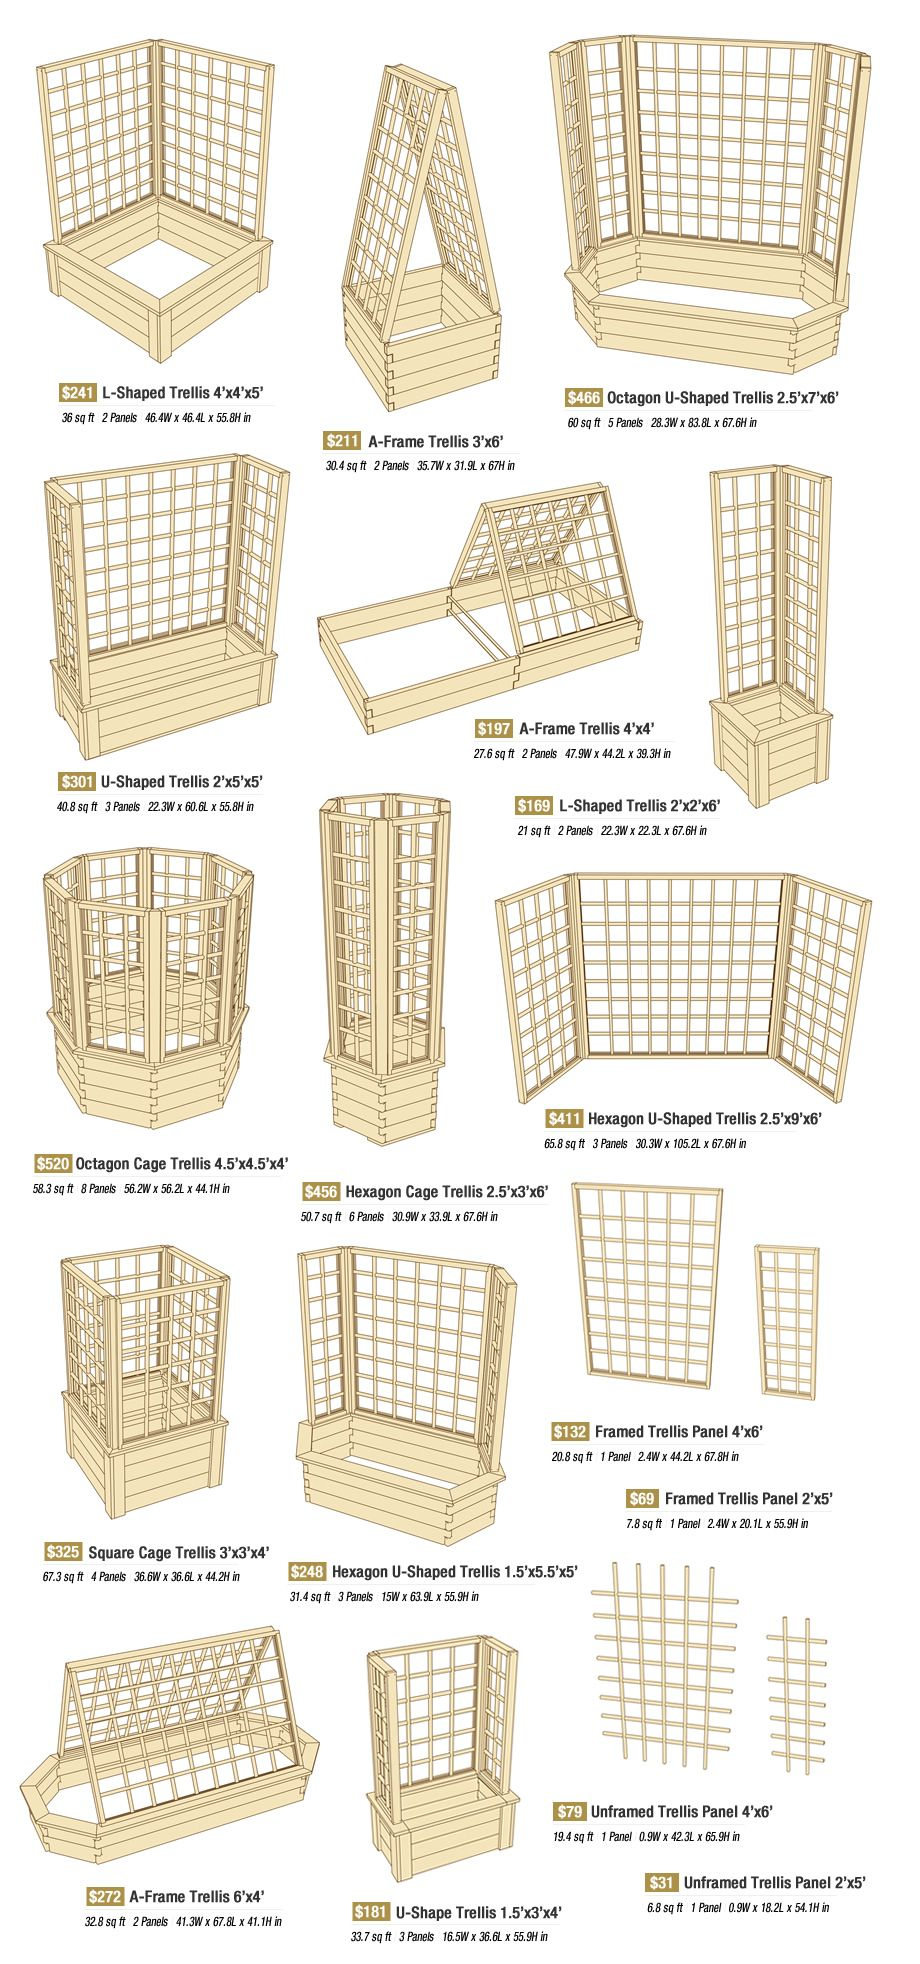 Trellises are available in many shapes and sizes | Outdoor Patio ...